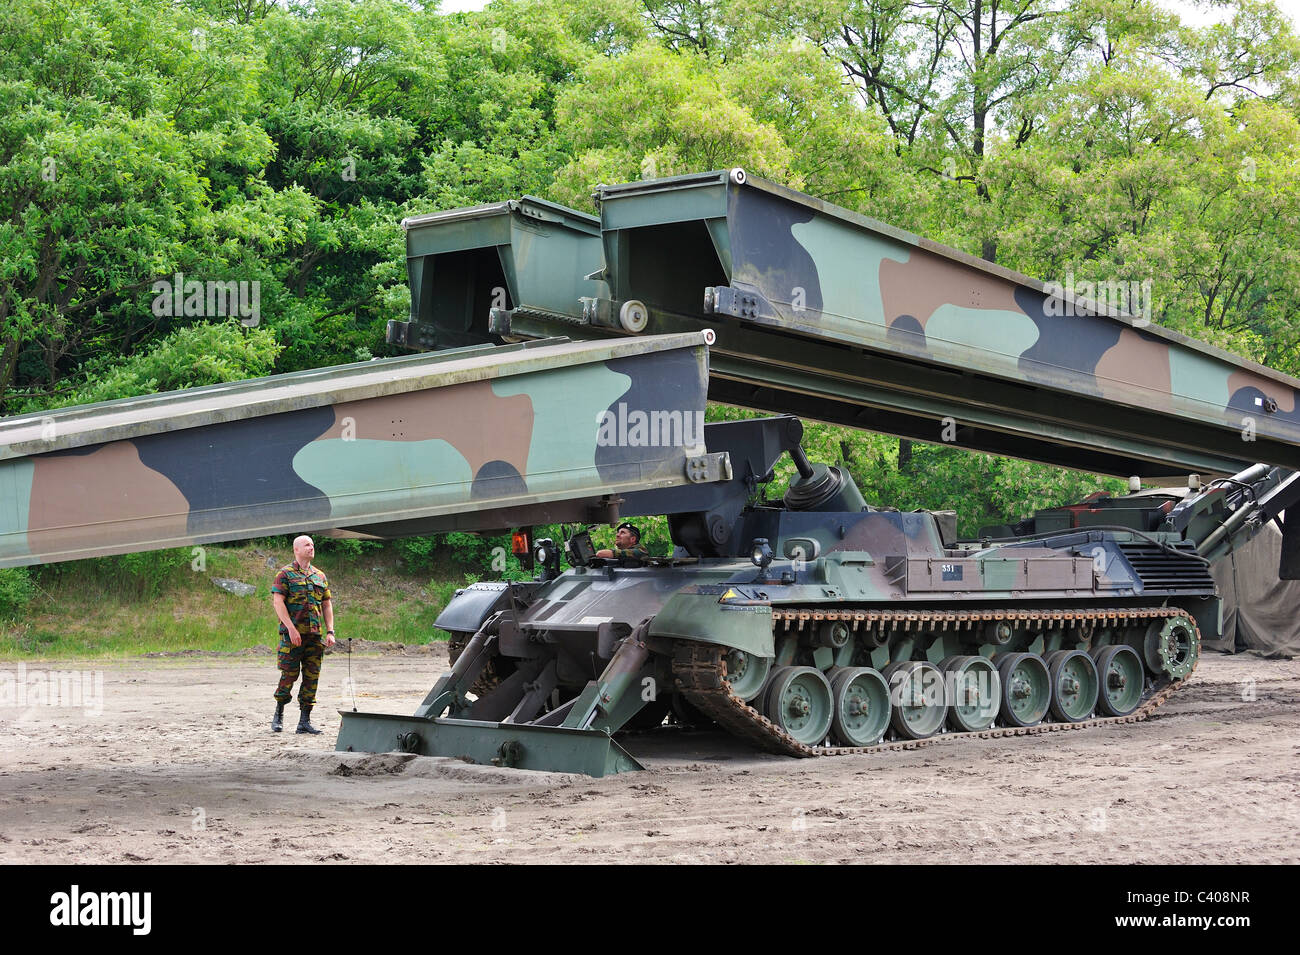 Iguana support bridge mounted on Leopard I tank, combat engineer vehicle of the Belgian army, Belgium - Stock Image